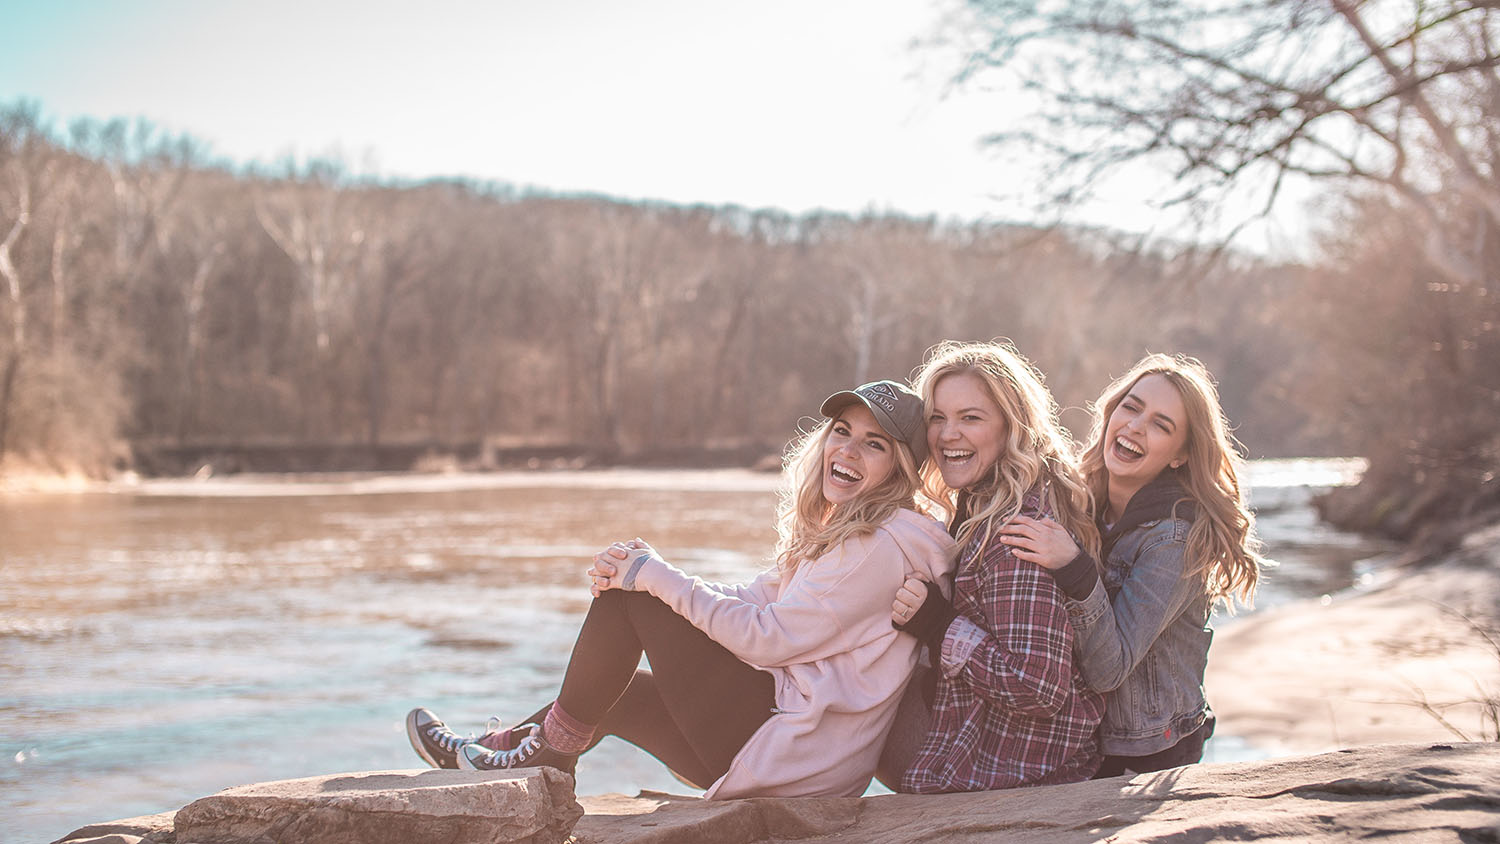 Girls laughing on a river bank enjoying the outdoors on a girls trip.